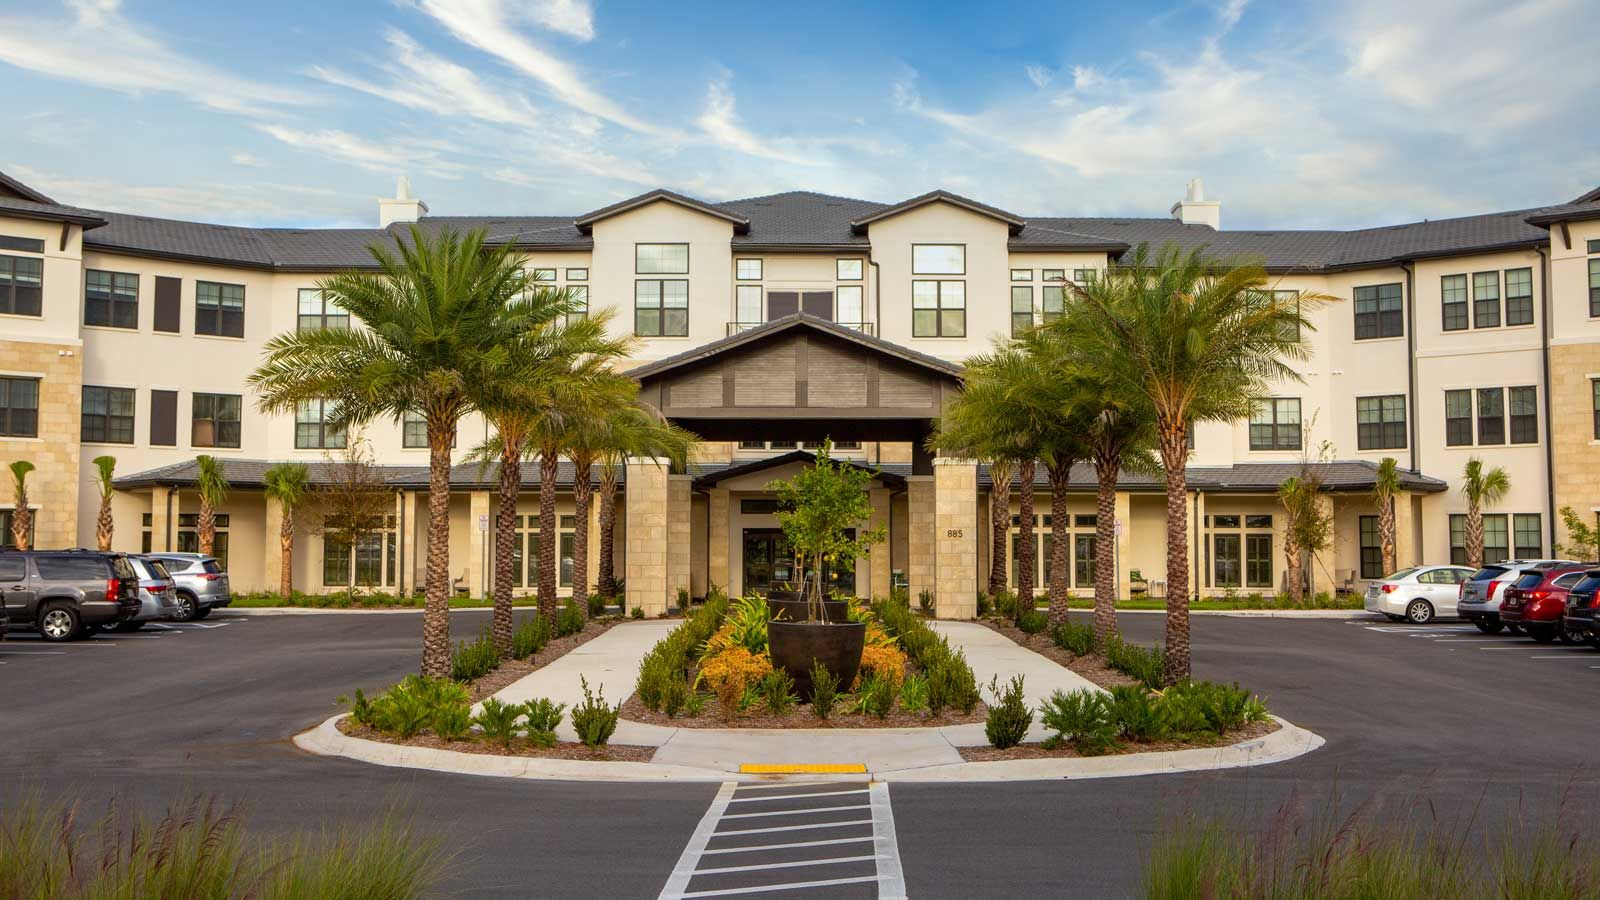 55 and older Apartments in Ponte Vedra, Florida